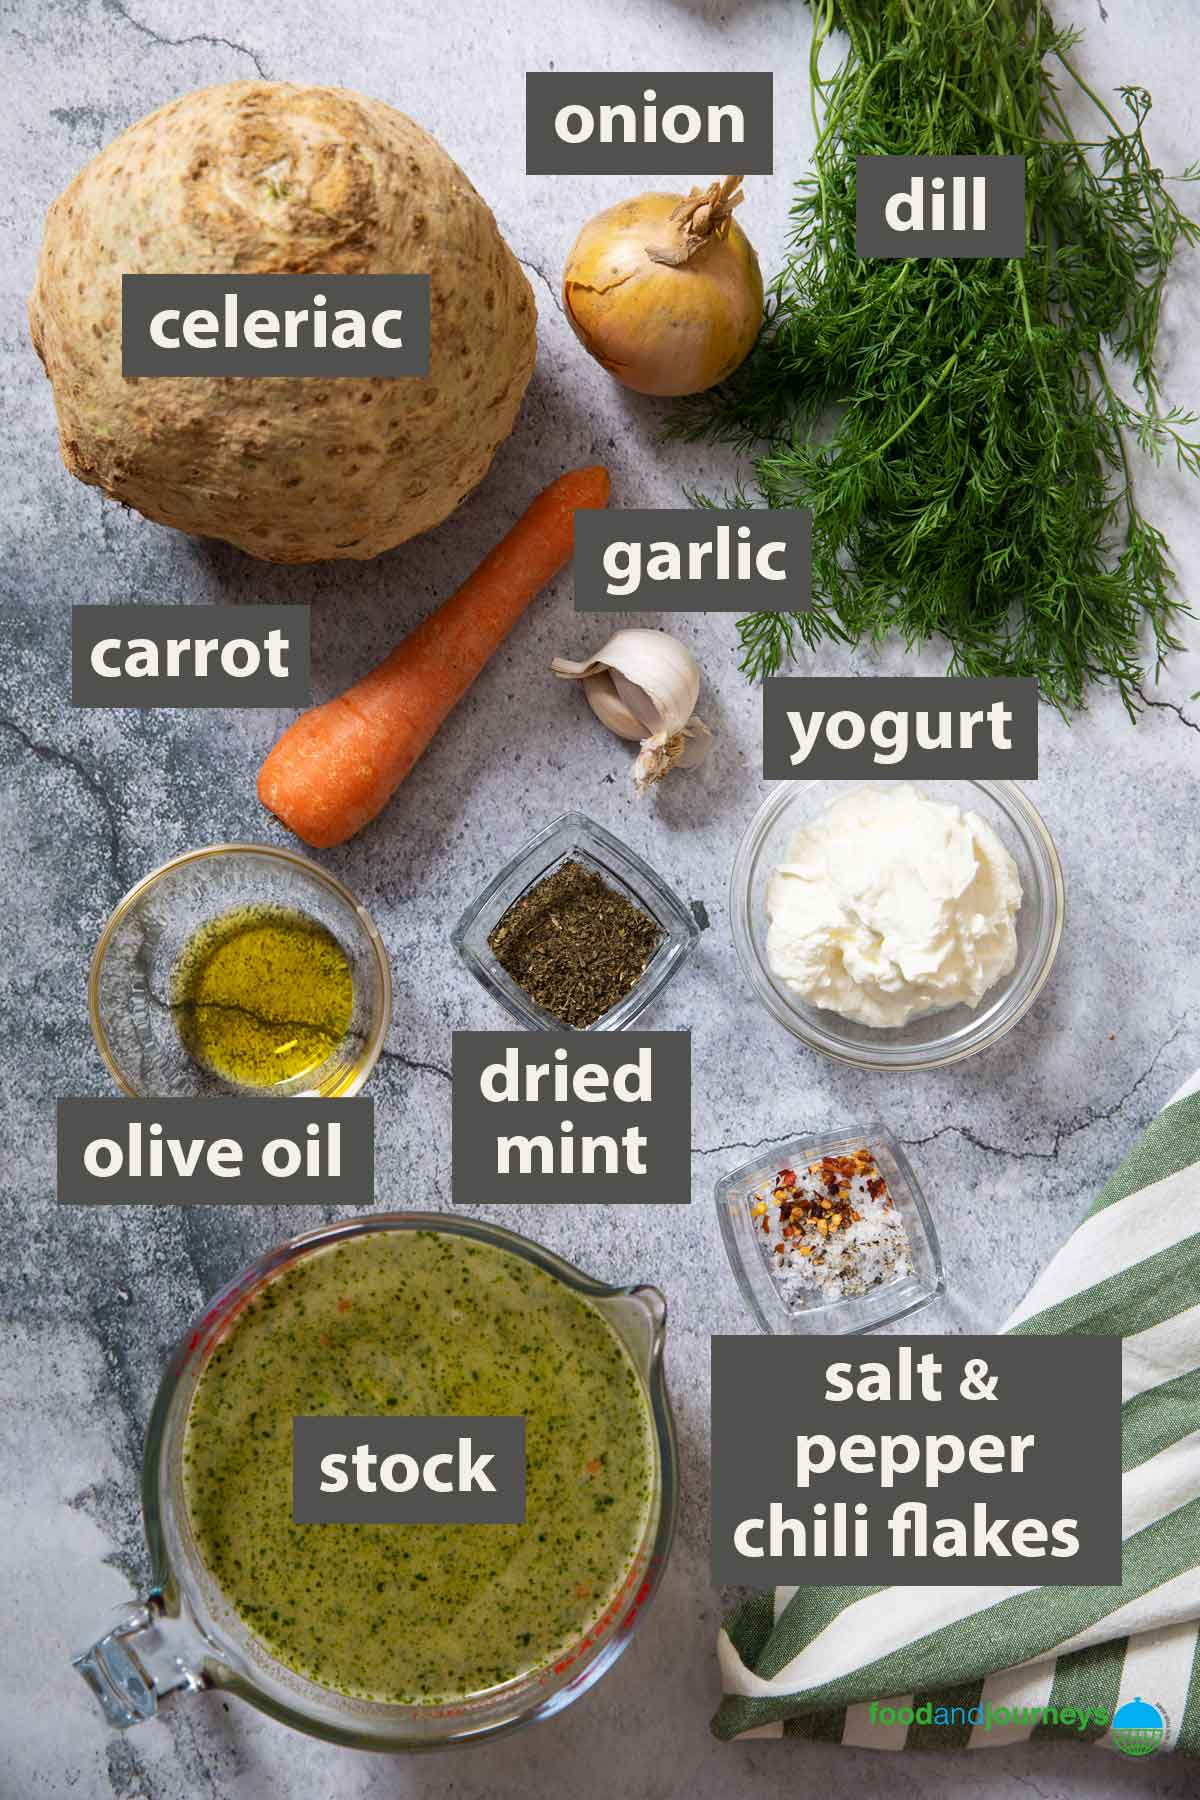 An image showing all the ingredients to prepare when making Turkish Celeriac Soup.